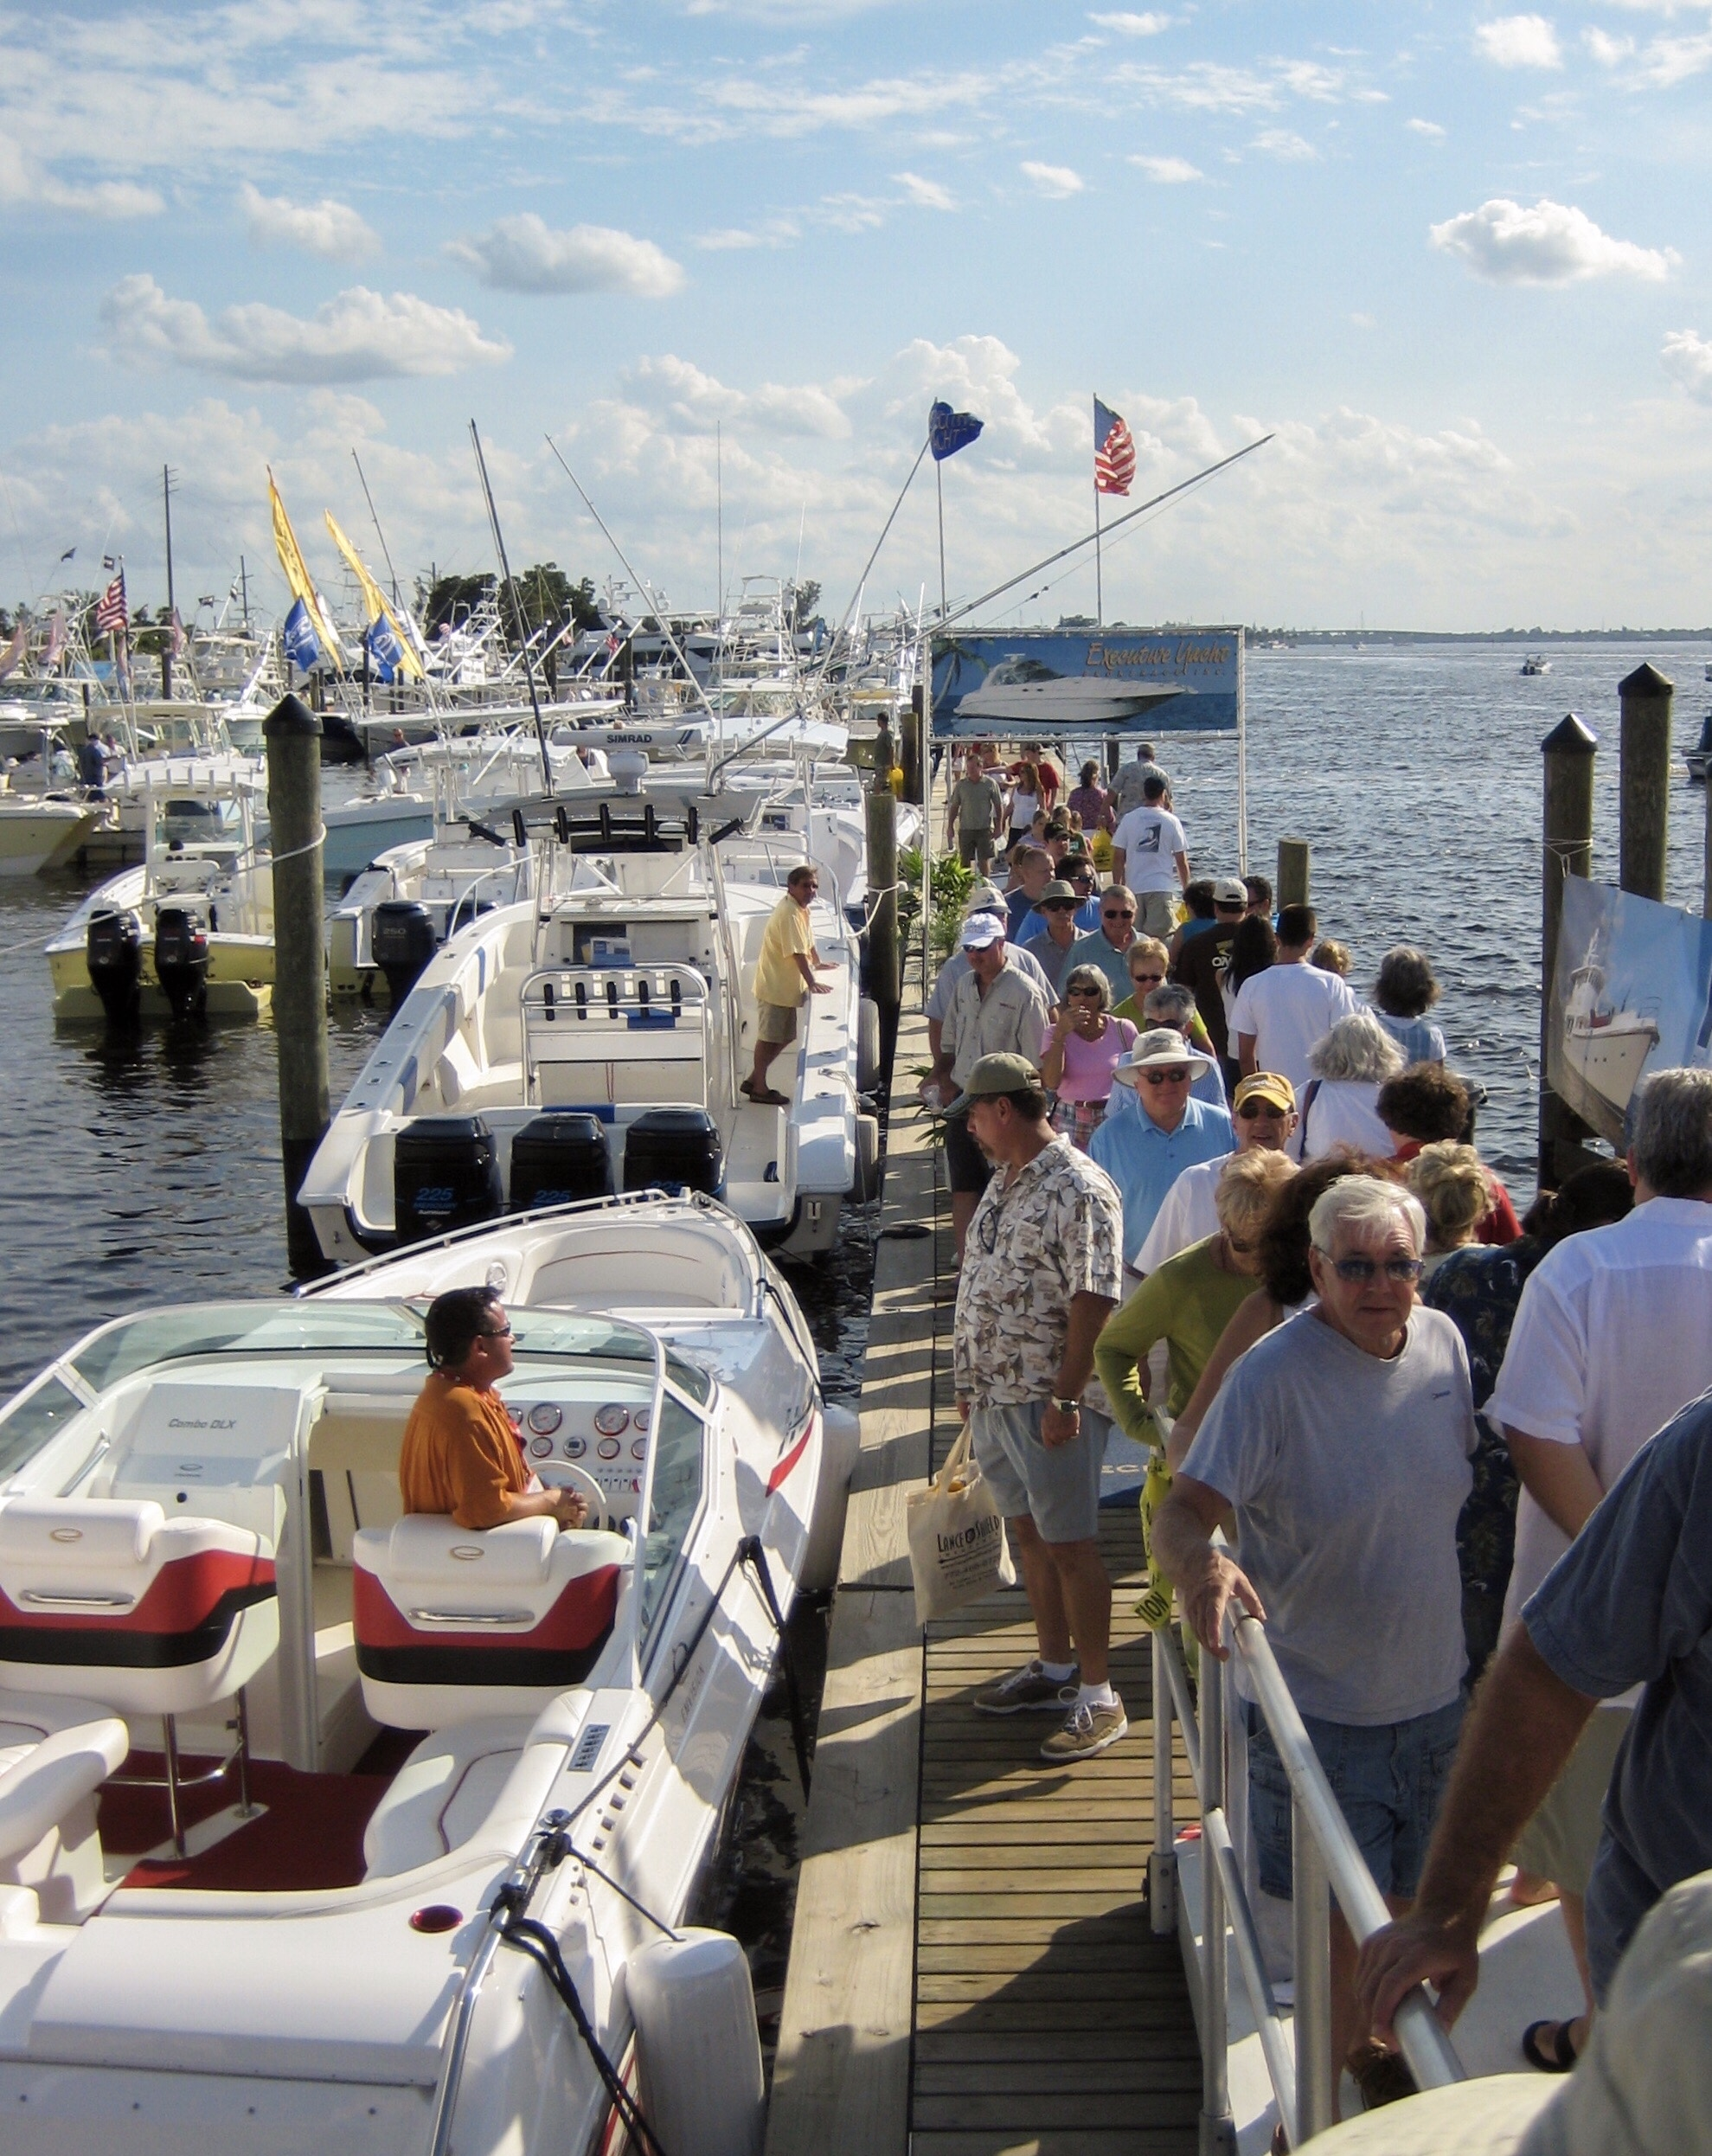 Stuart Boat Show -Patrons on the Floating Docks - Allsports Productions